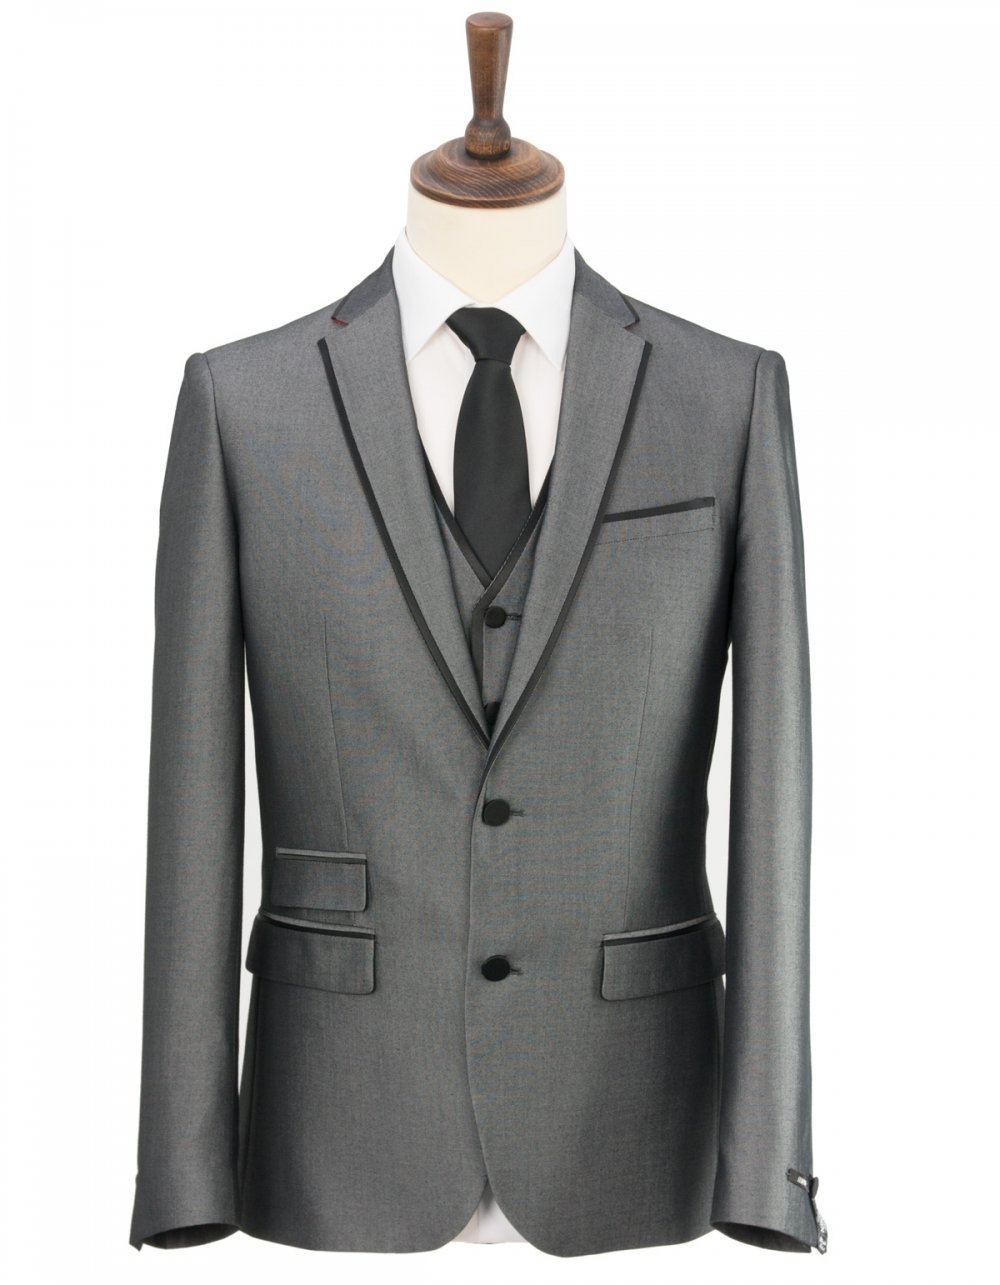 Harry Brown Slim Fit 3 Piece Prom Suit - Silver - Suits from